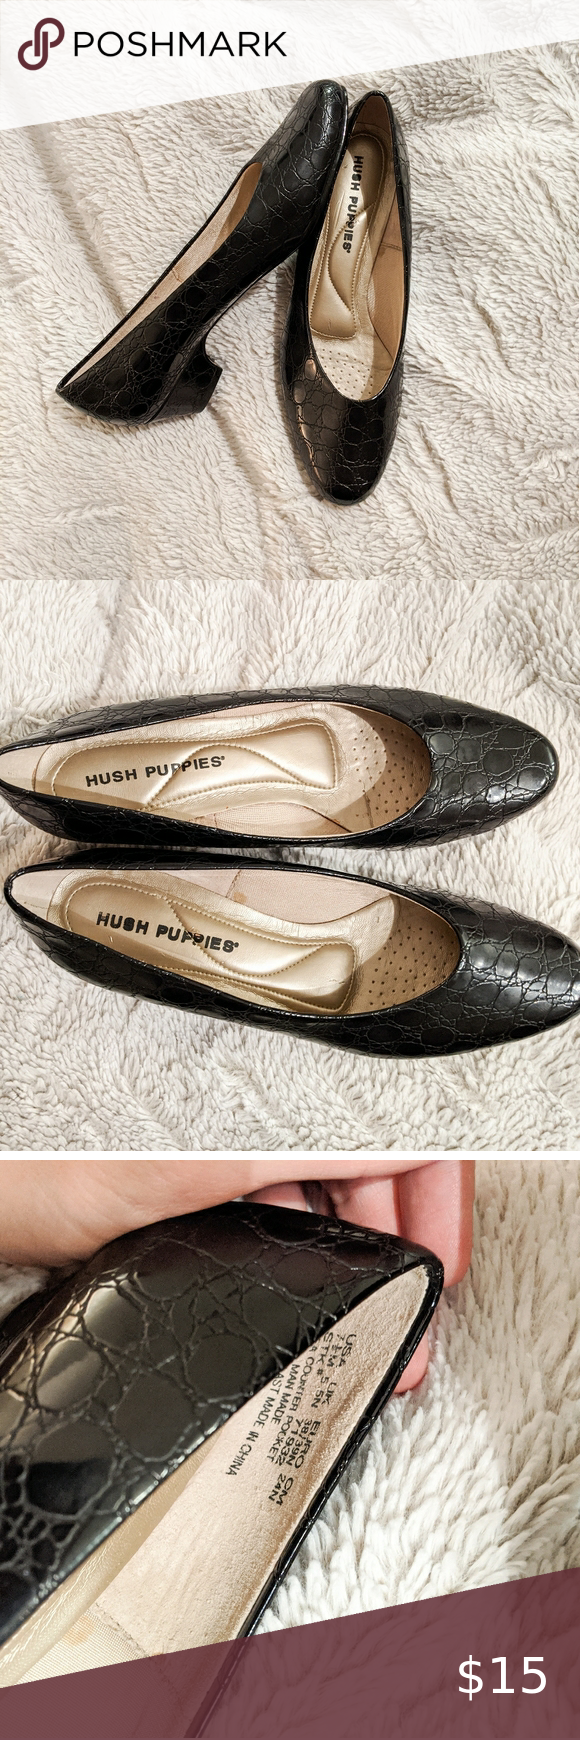 Black Patent Kitten Heels Black Patent Kitten Heels Soooooo Perfect As The Black Shoe Staple For Your Close In 2020 Kitten Heels Hush Puppies Shoes Shoes Women Heels